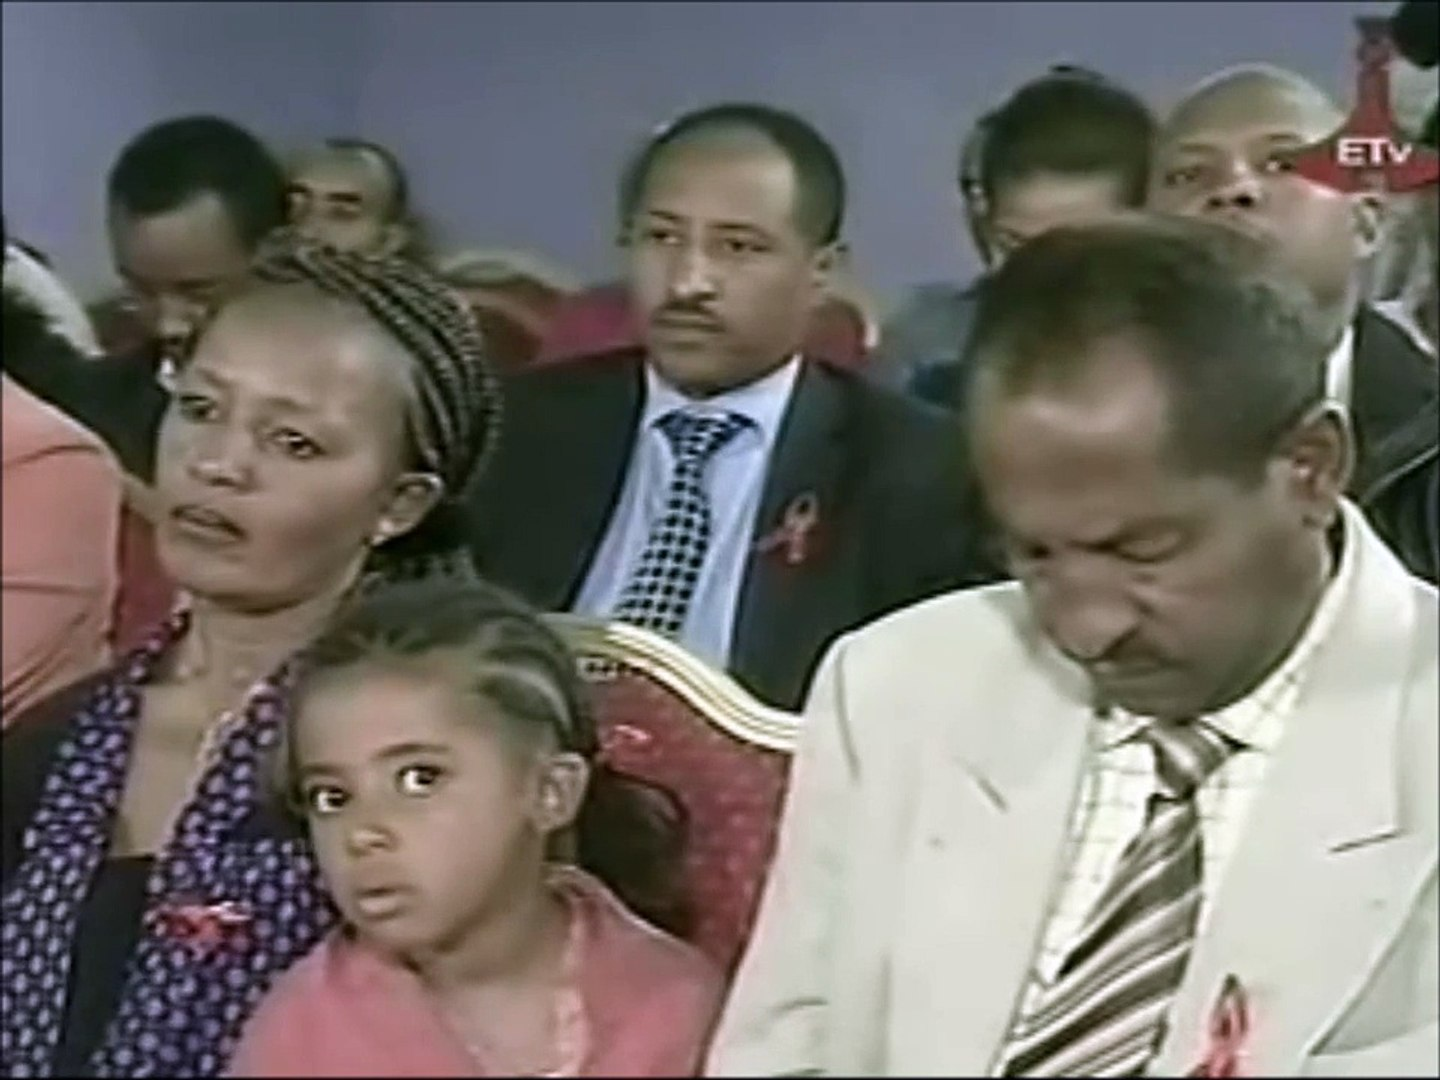 Panel discussion on HIV-AIDS prevention in Ethiopia (ETV - 24 Dec 2012)